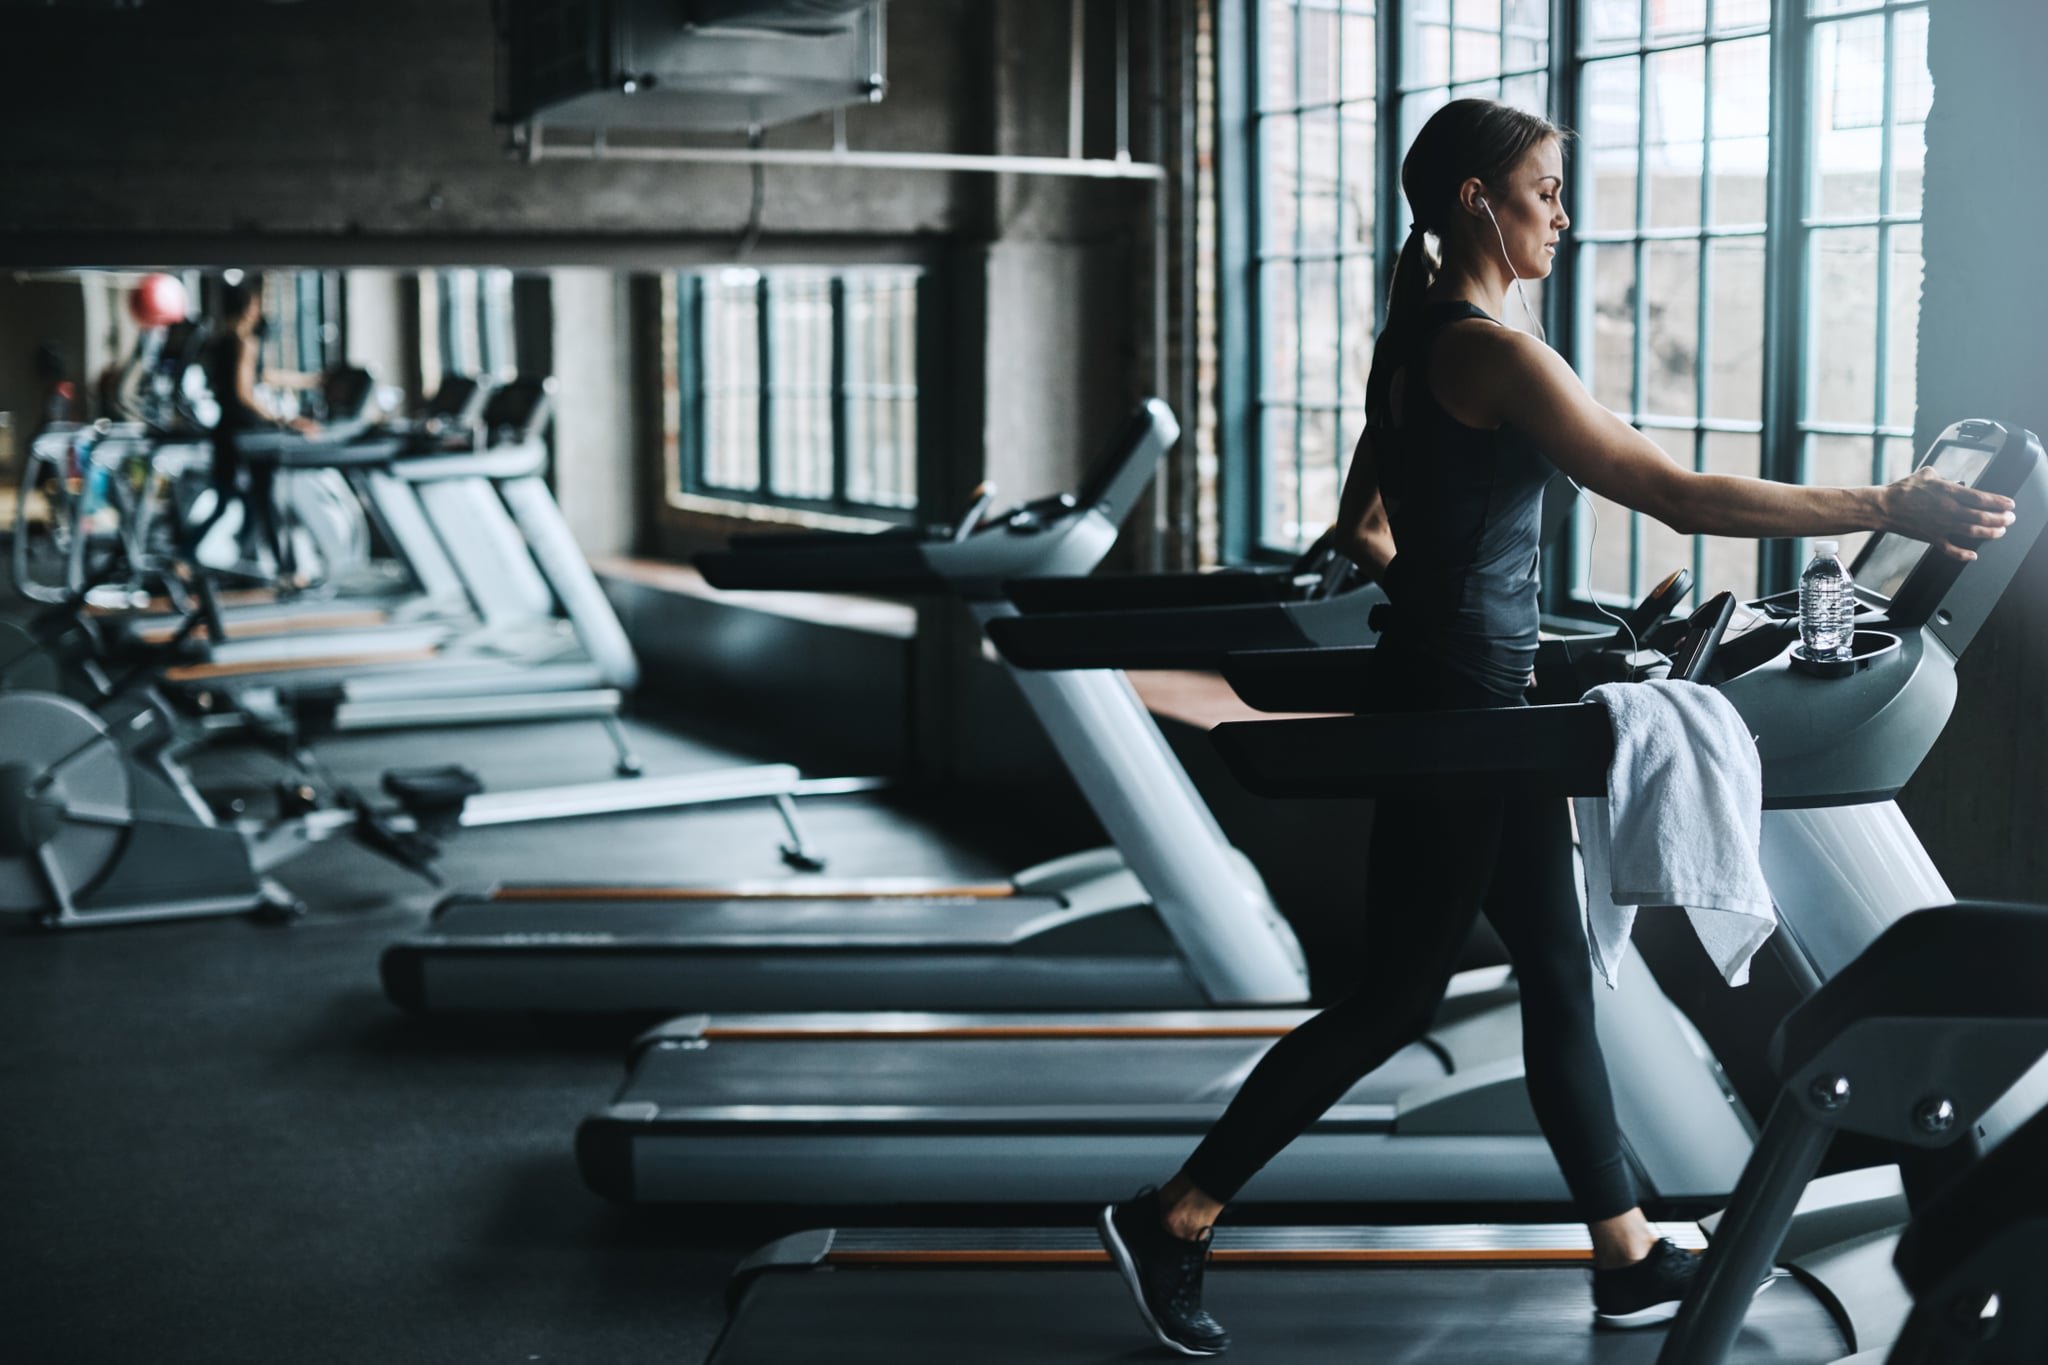 Shot of an attractive young woman working out on a treadmill in a gym